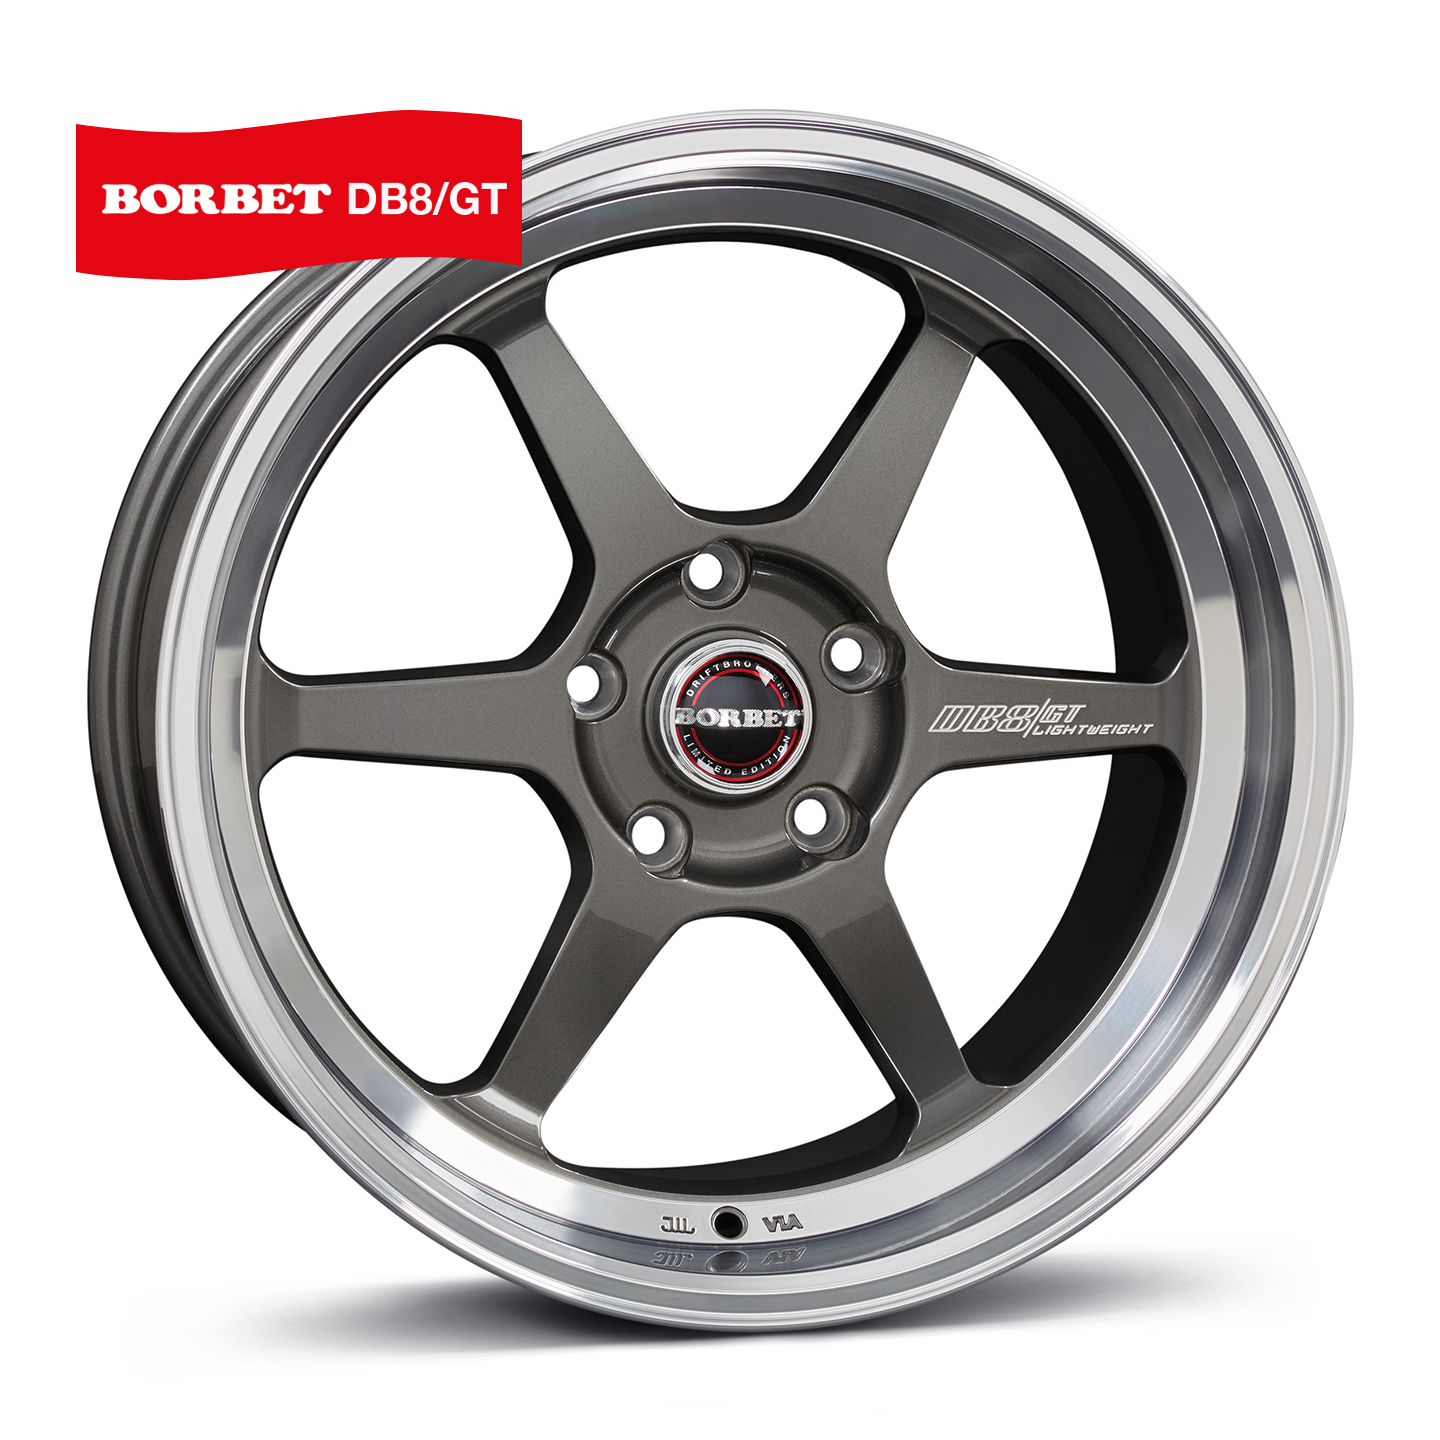 Borbet DB8GT 9.5x18/5x120 D72.6 ET30 graphite rim polished